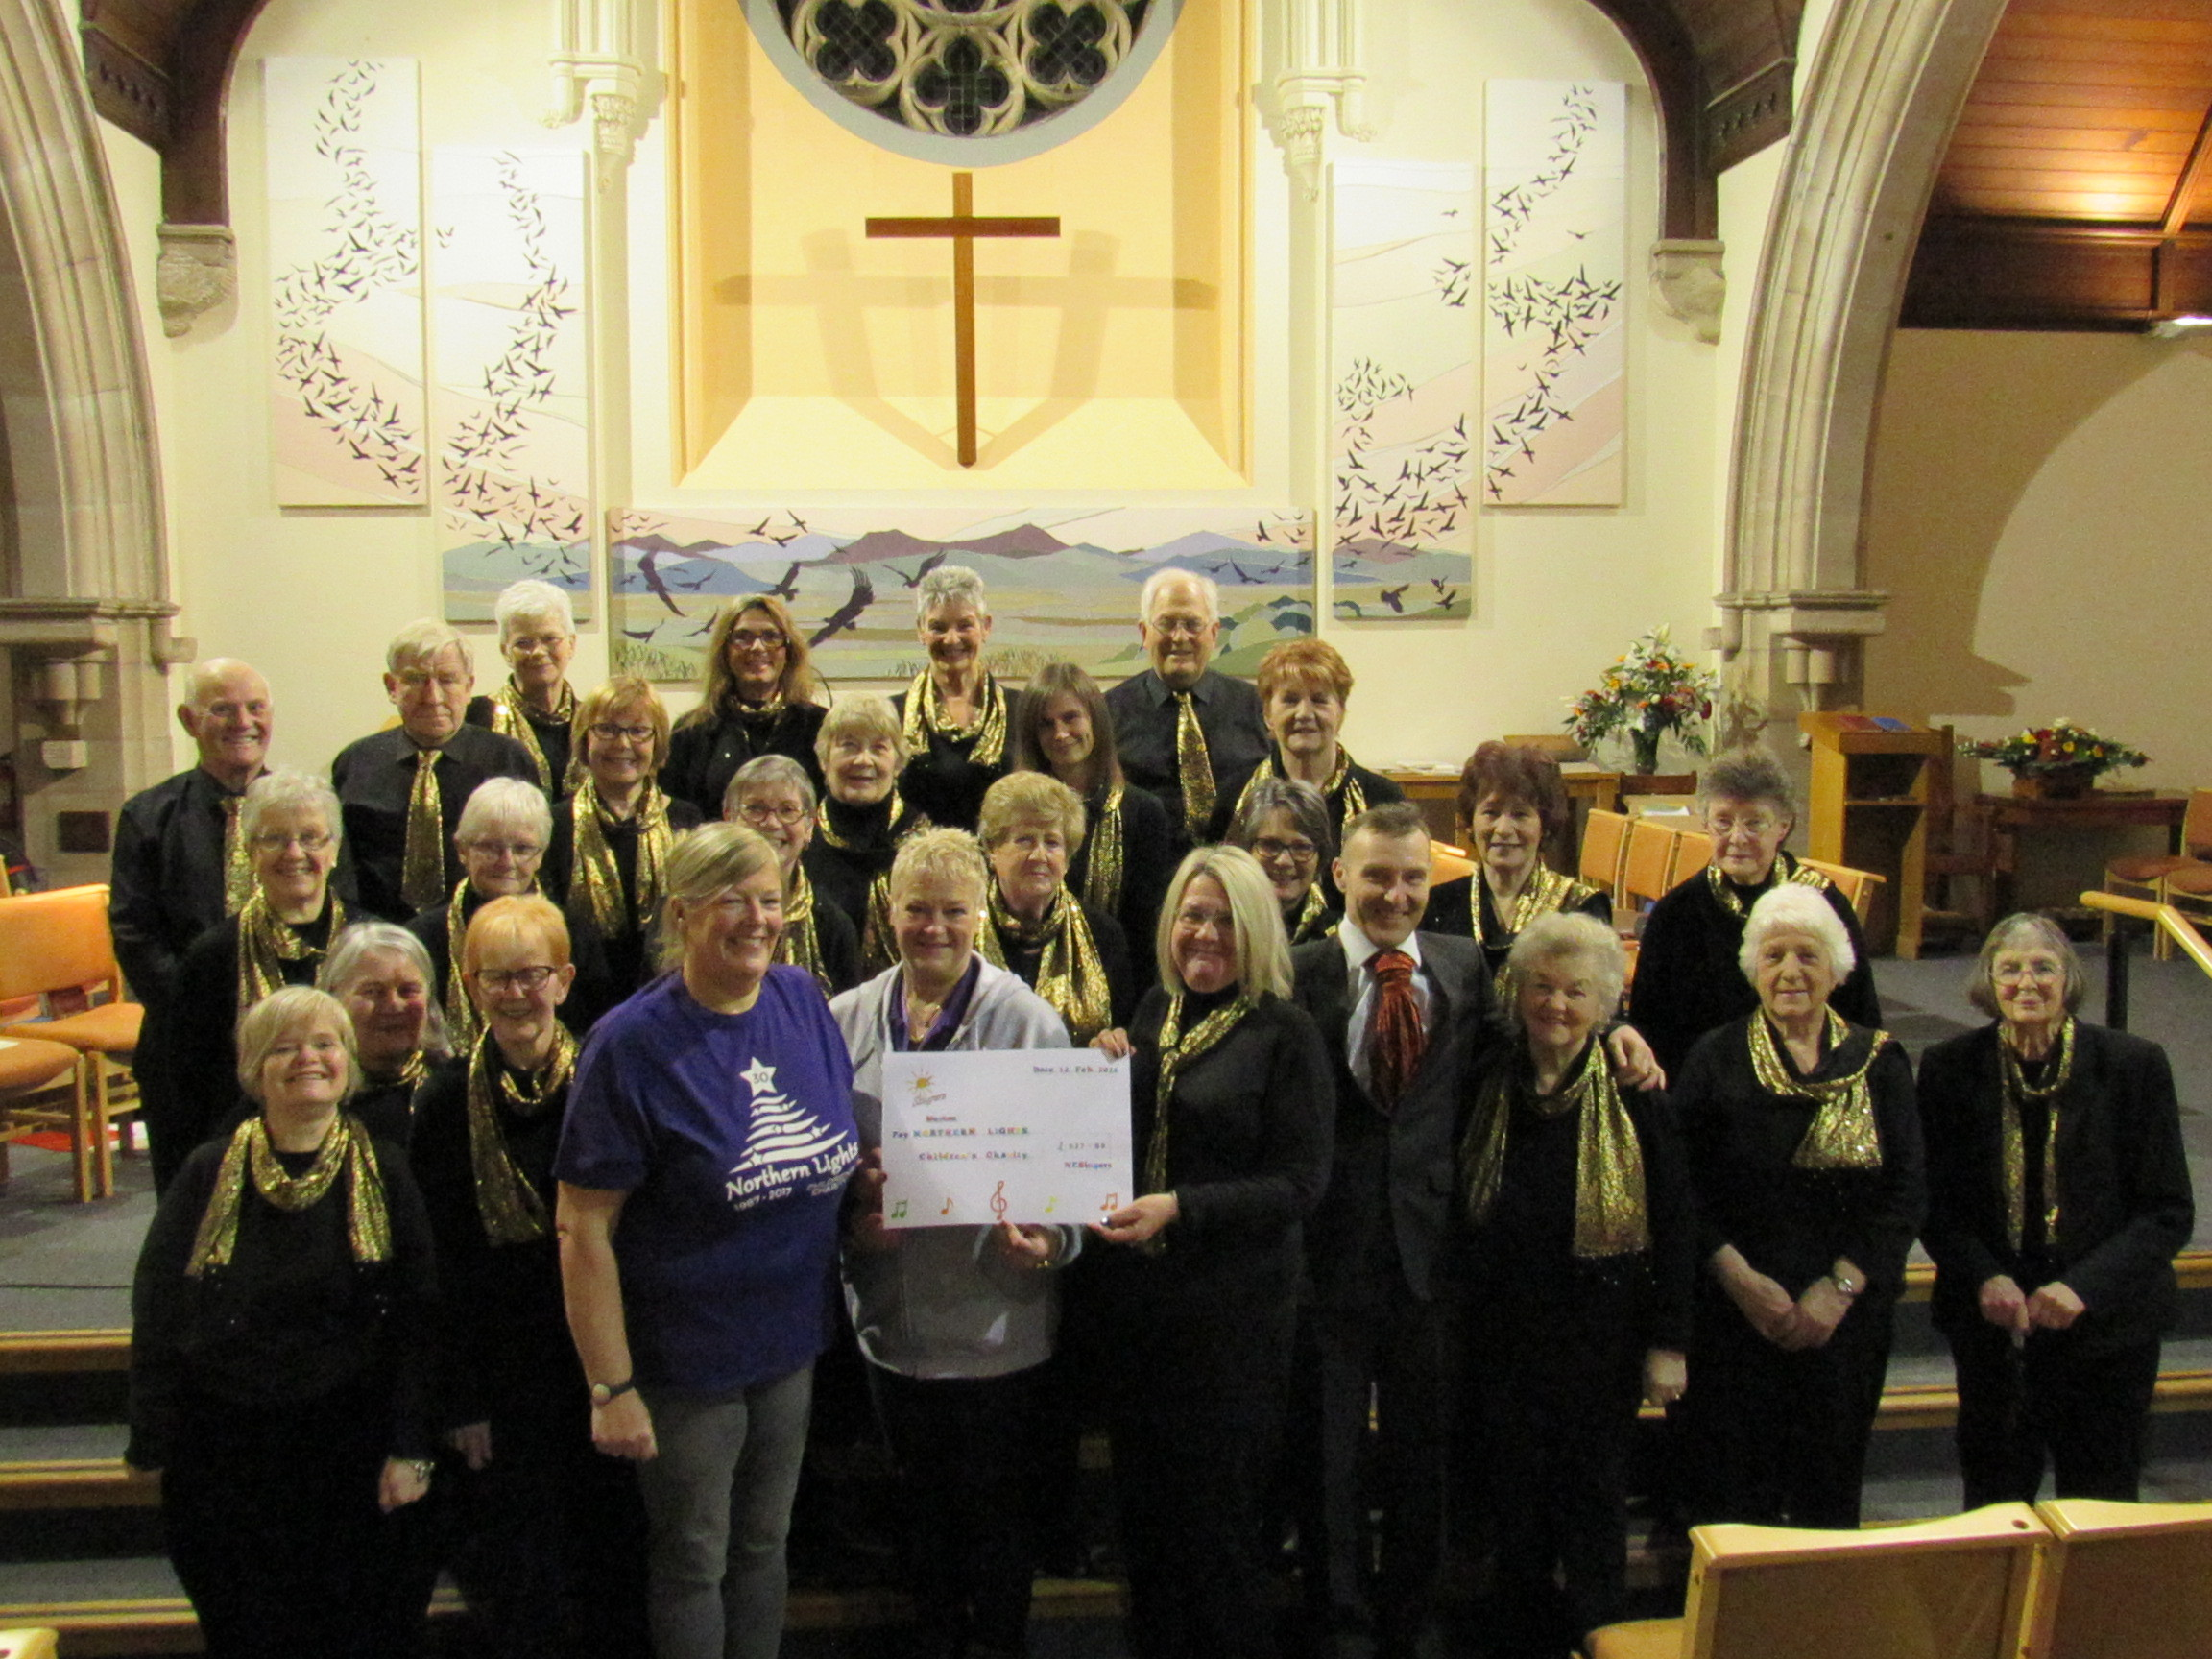 The chairperson of the NE Singers choir, Jennifer Ricketts, presents the cheque to Karen Jones MBE, chair of Northern Lights, and Wendy Reilly, treasurer.